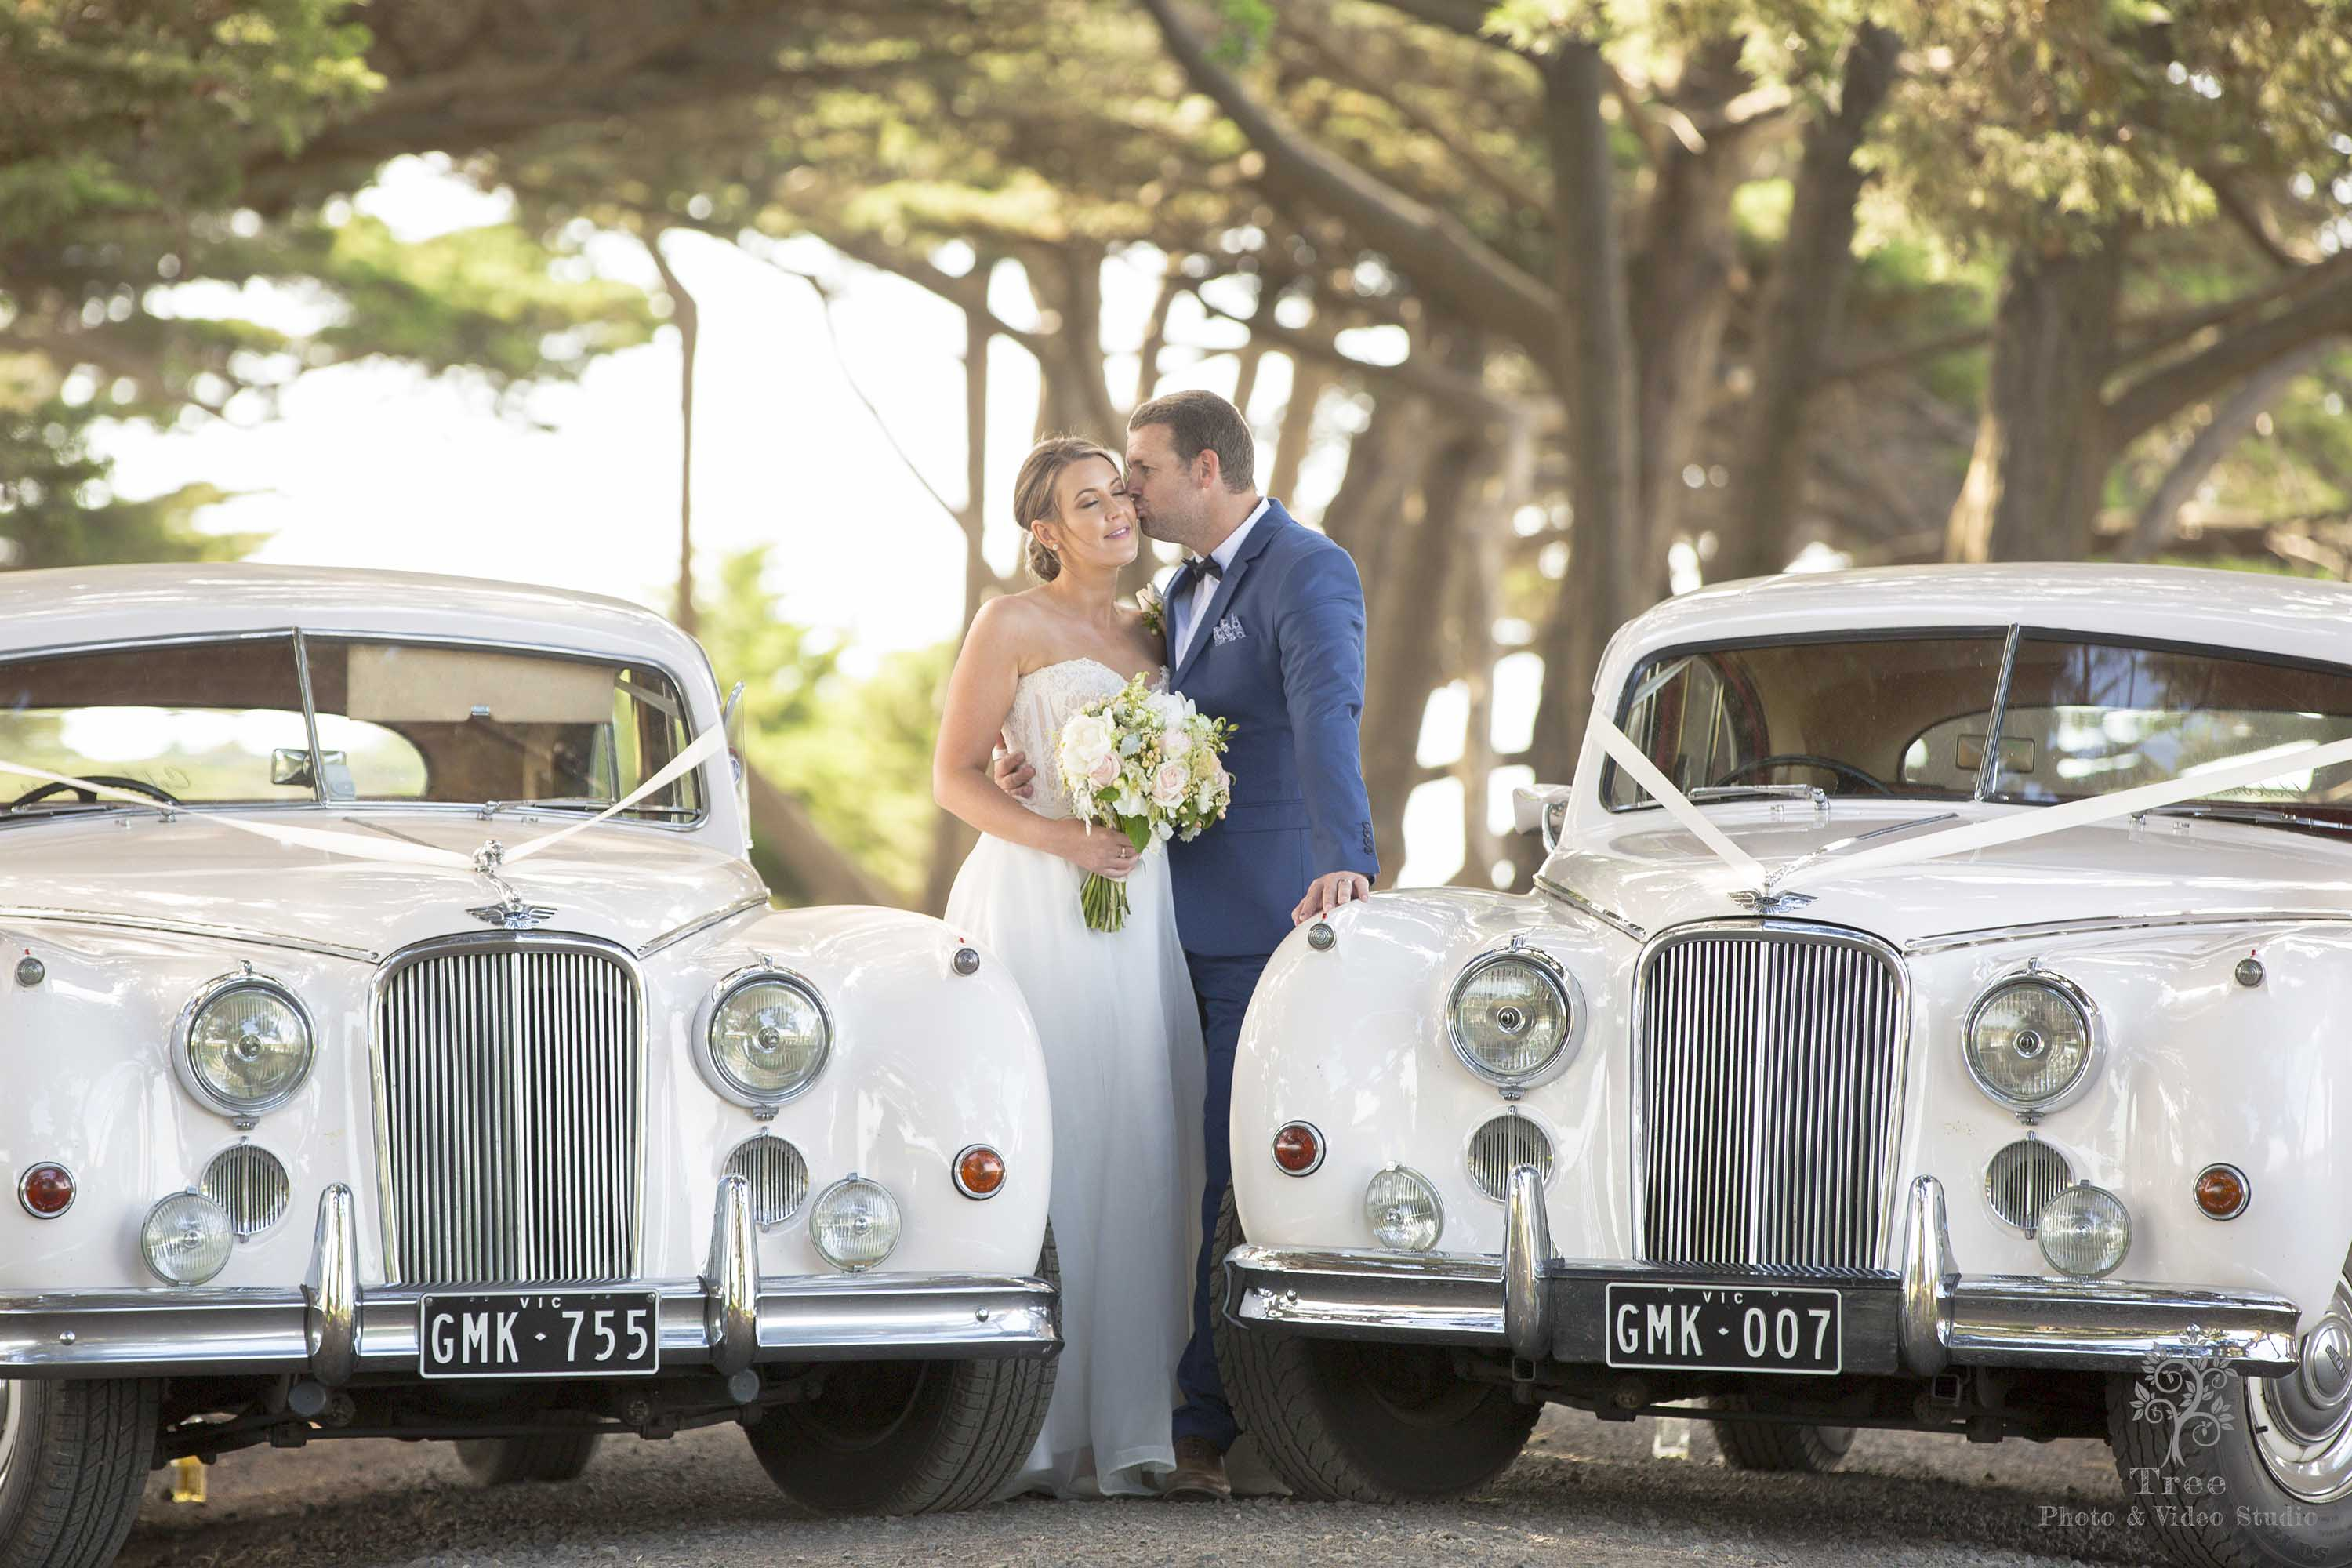 <a href=&quot;http://www.treephotovideo.net.au/melbourne-wedding-photography-gallery-2/&quot;>Gallery</a>